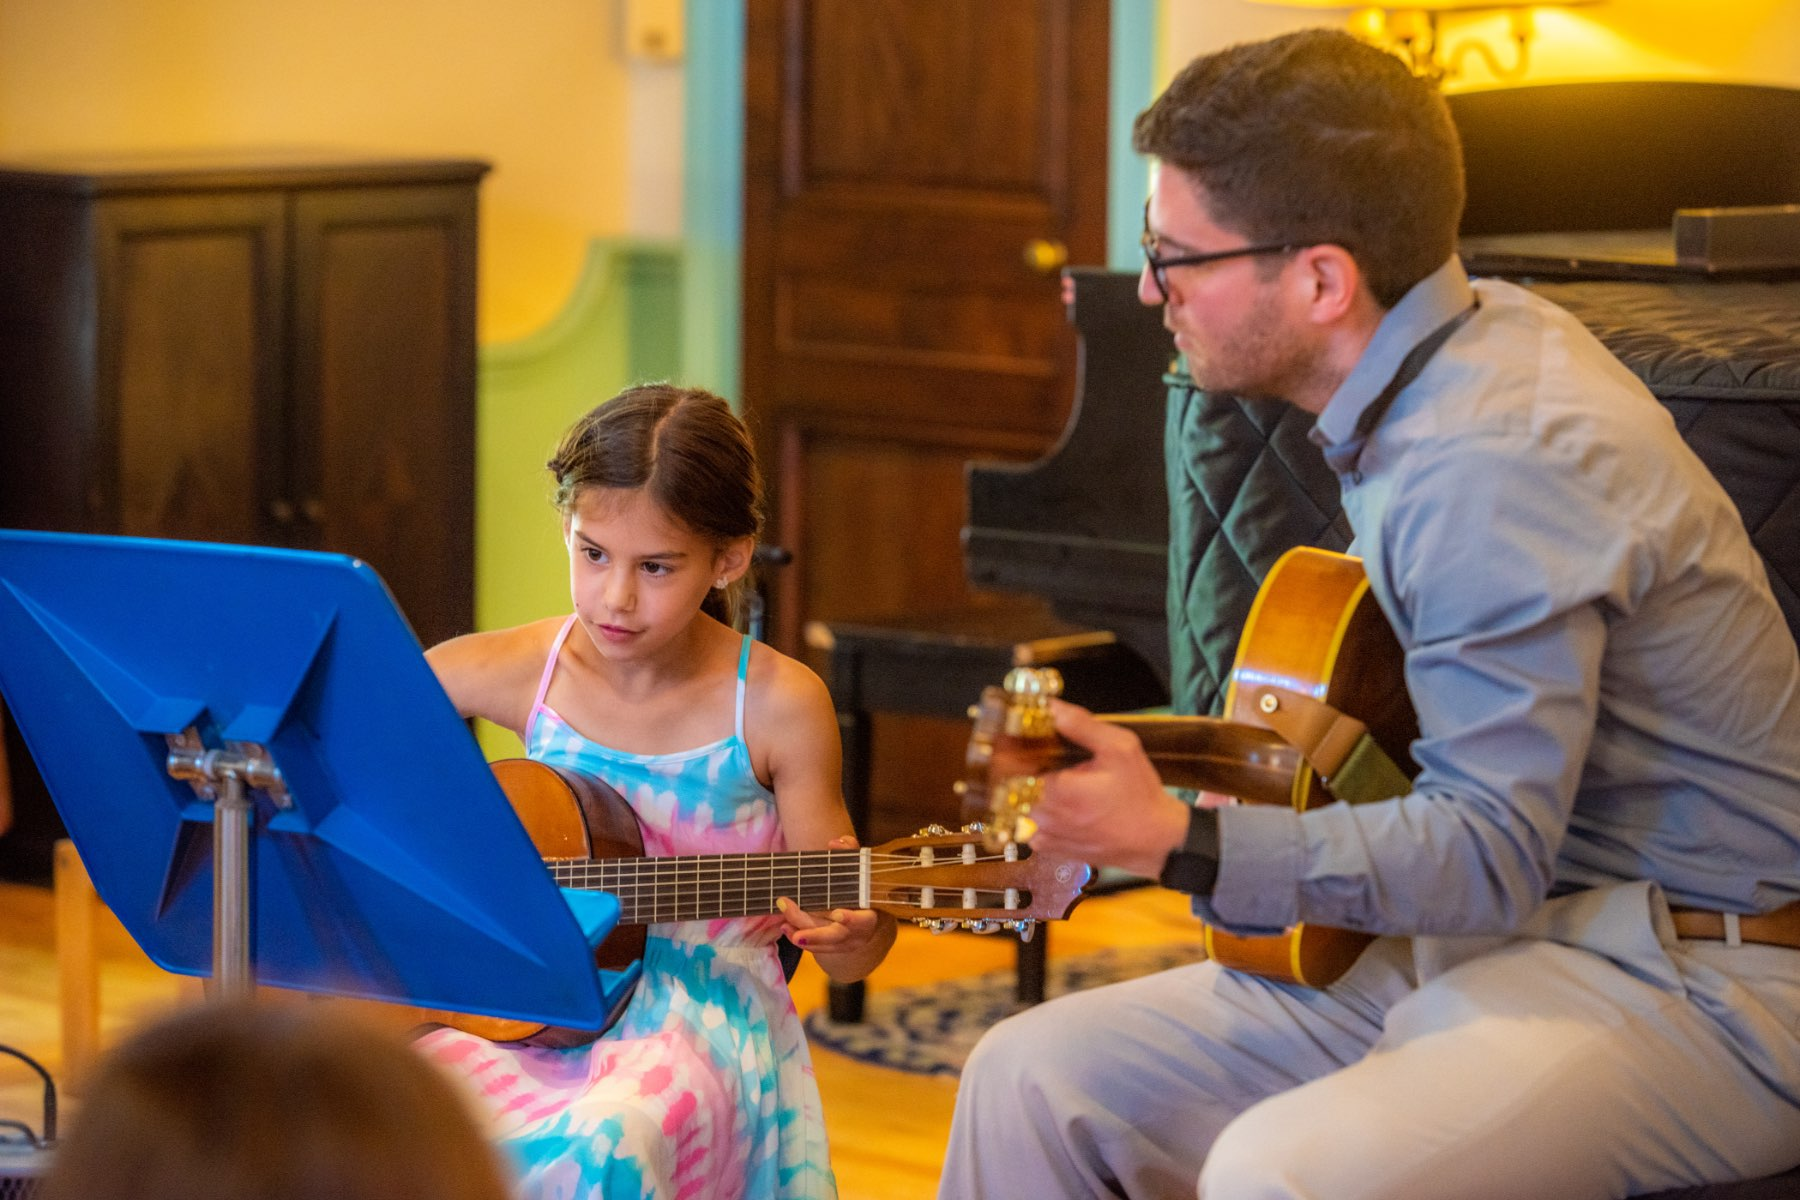 young student at recital playing guitar next to instructor.